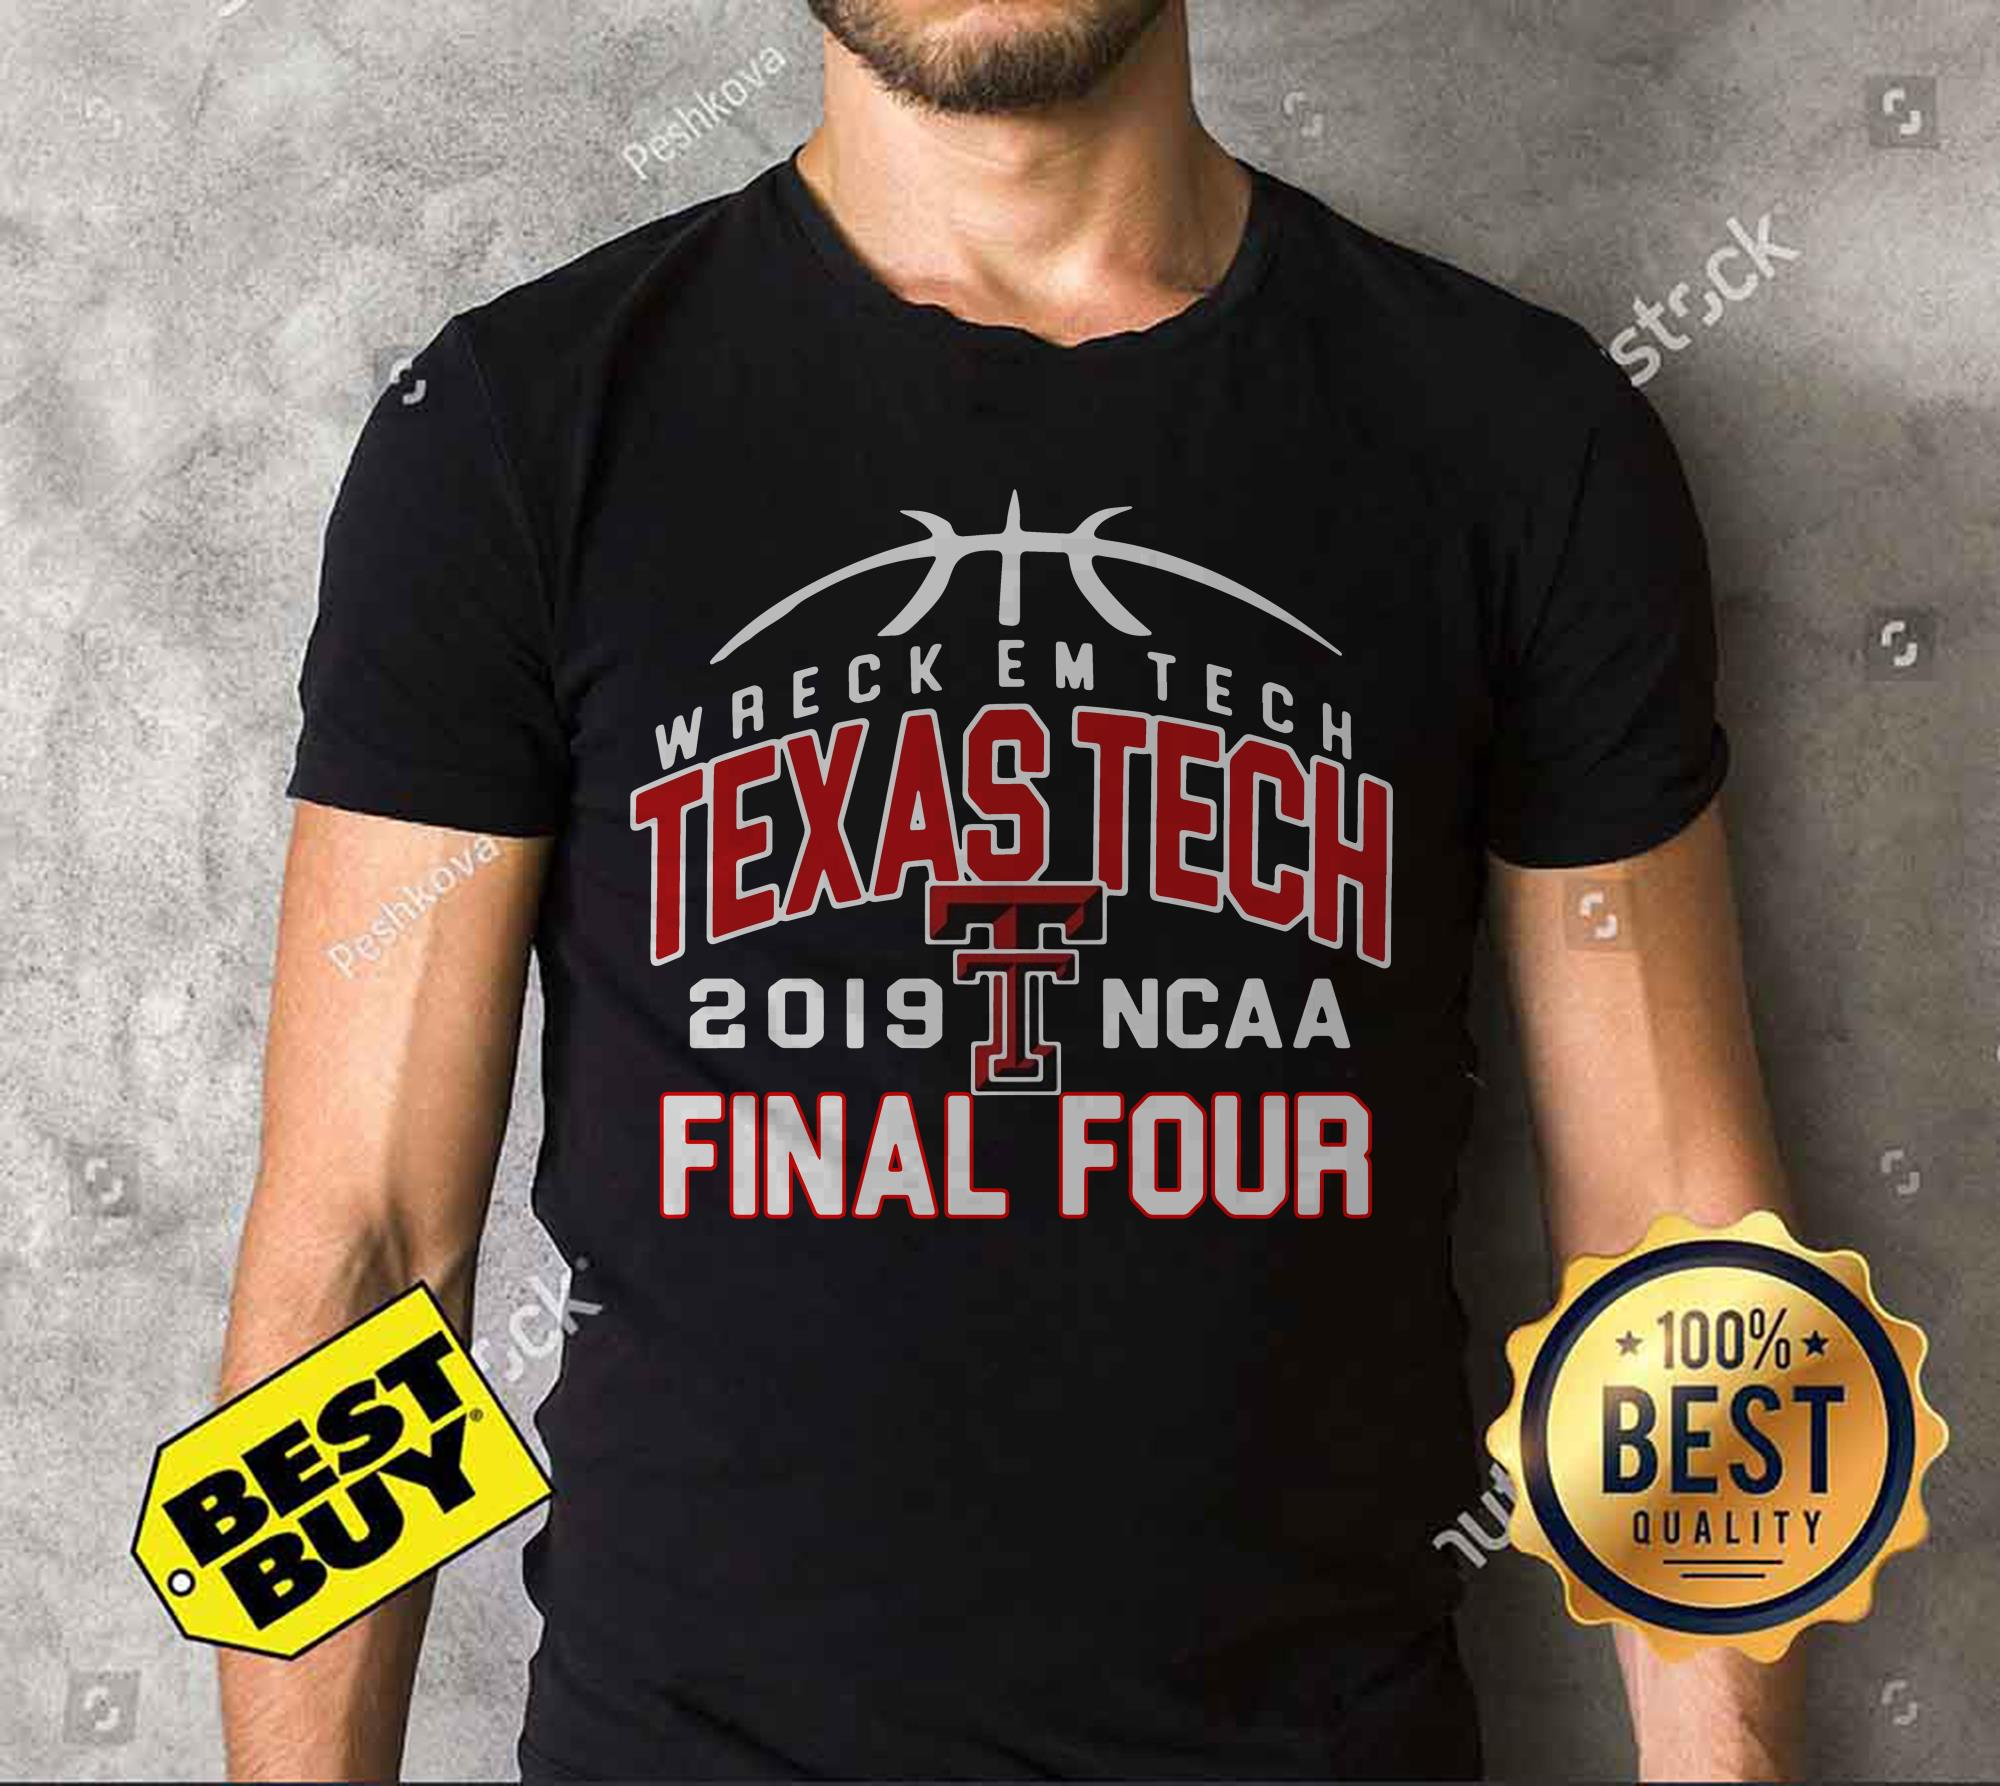 Wreckem Tech Texas Tech 2019 Ncaa Final Four ladies tee